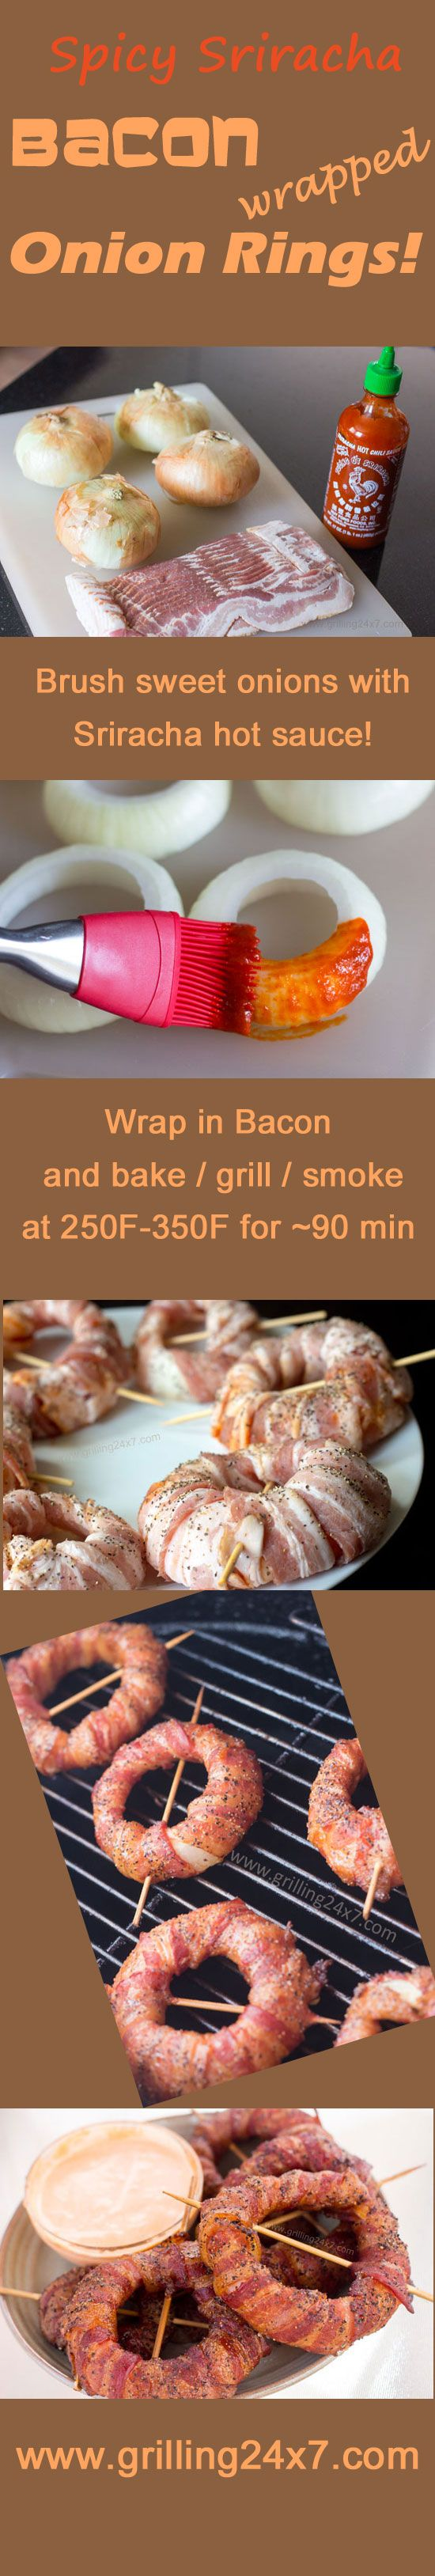 #BACON wrapped onion rings.  The next new over-the-top grilling appetizer!